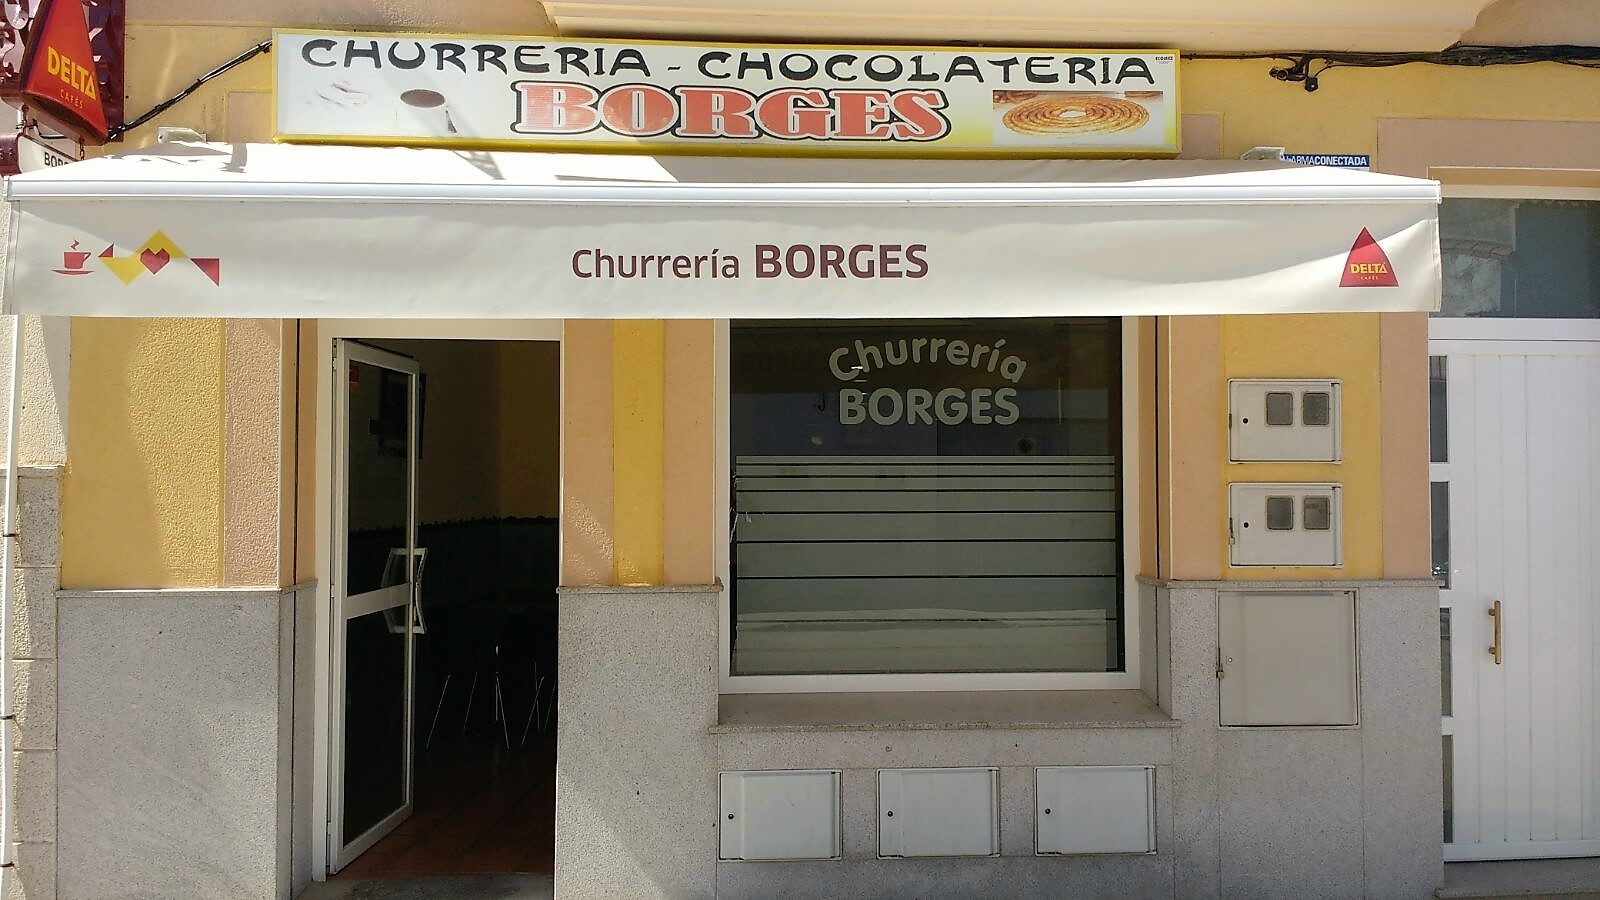 CHURRERIAS Y CHOCOLATERIA BORGES